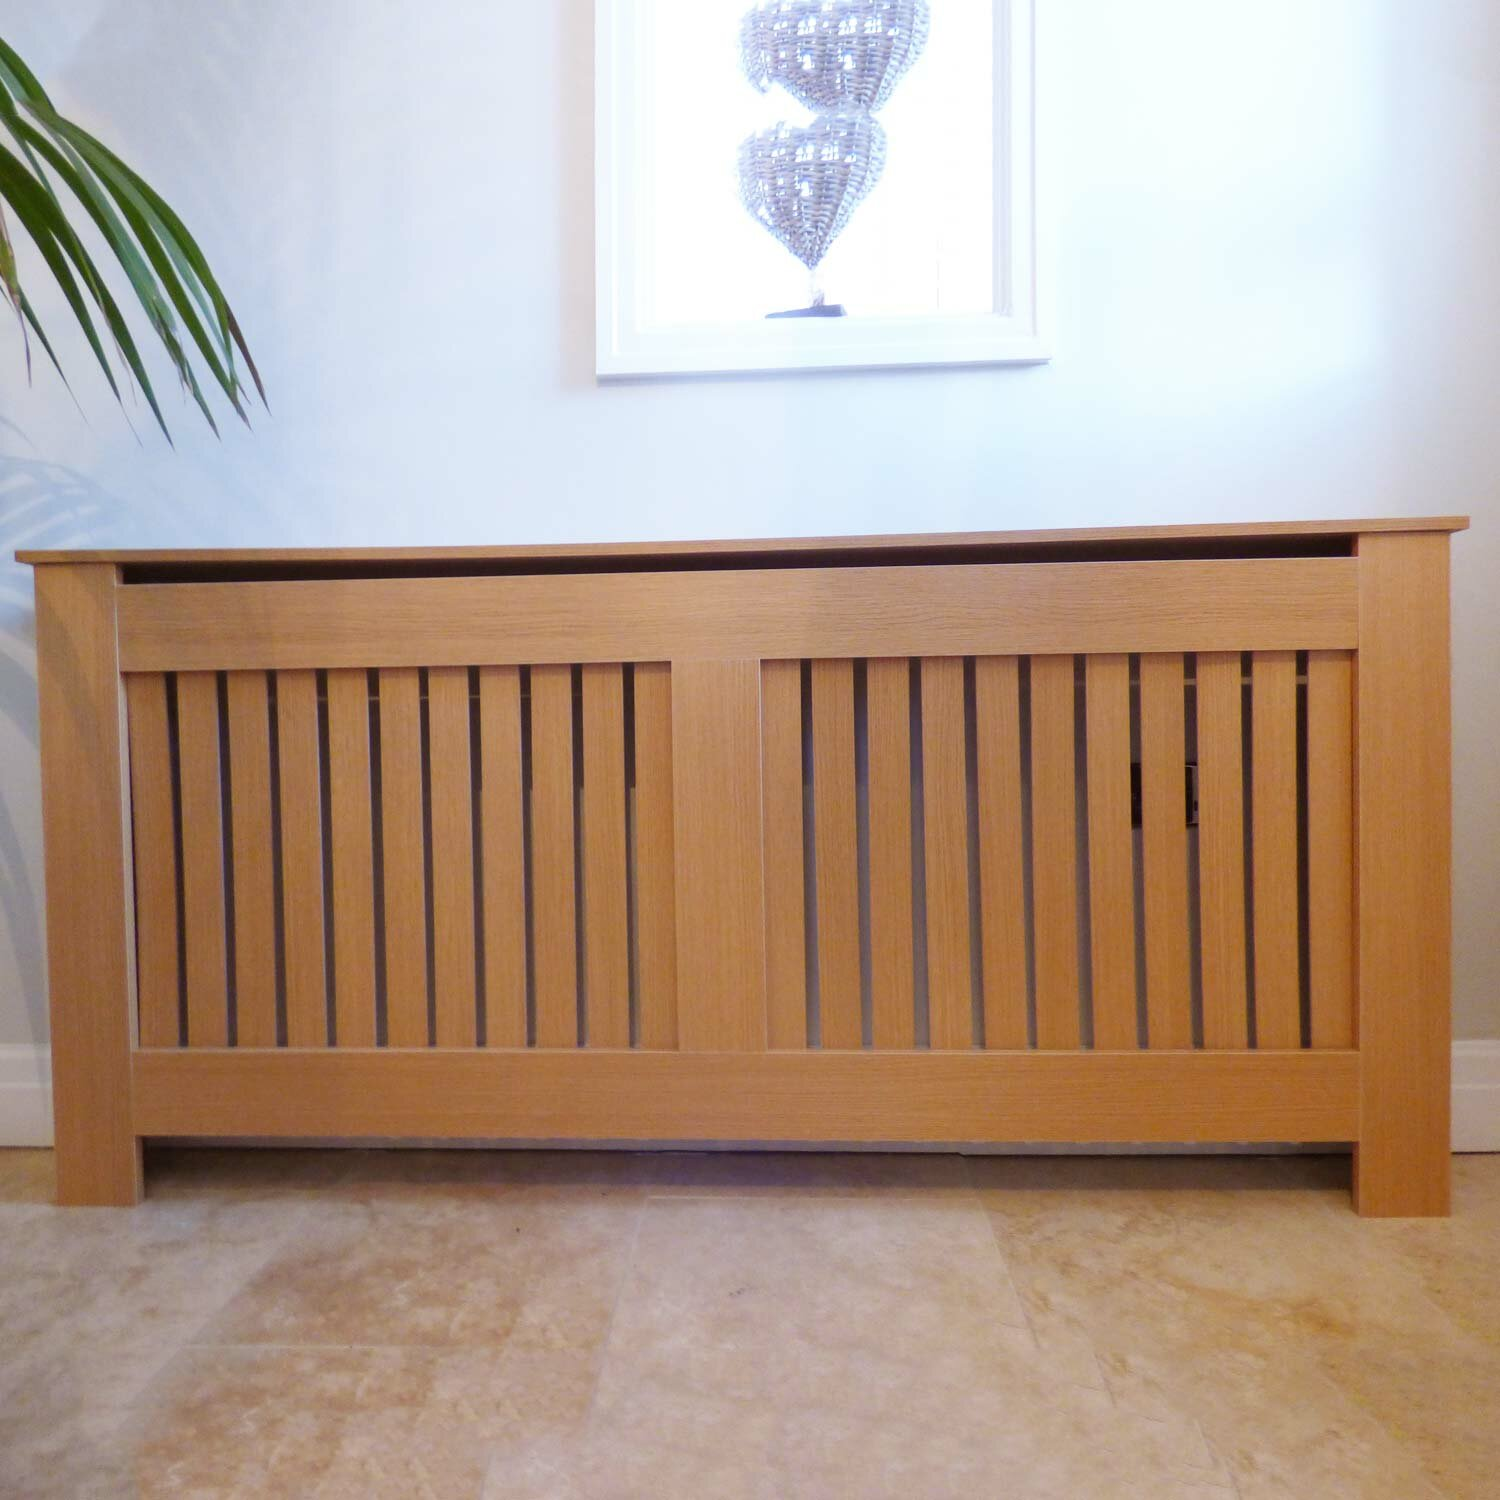 August Grove Quintero Extra Large Radiator Cover Reviews Wayfair Co Uk